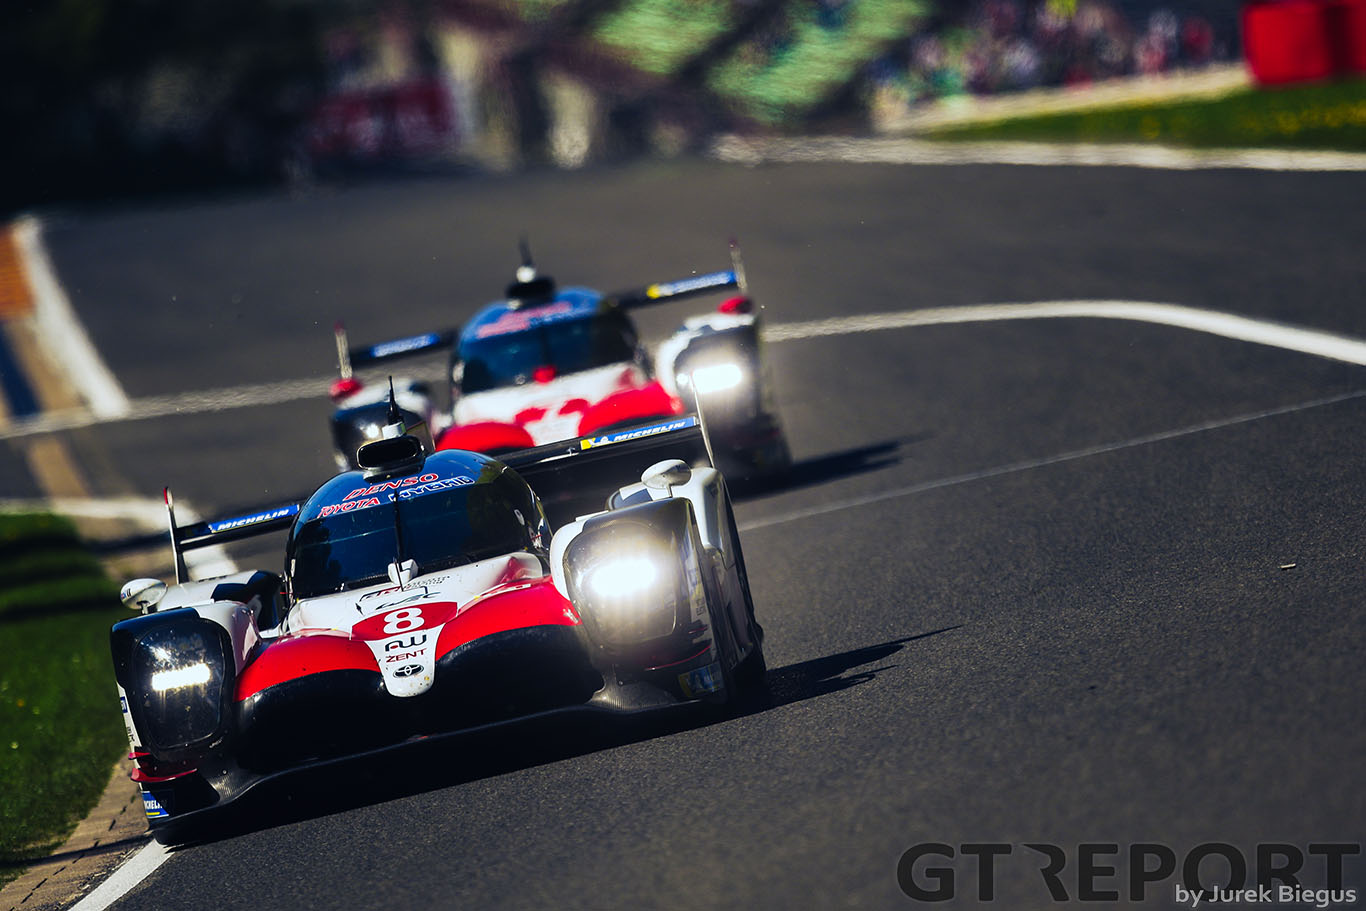 FIA WEC Spa race report: Alone in a crowd